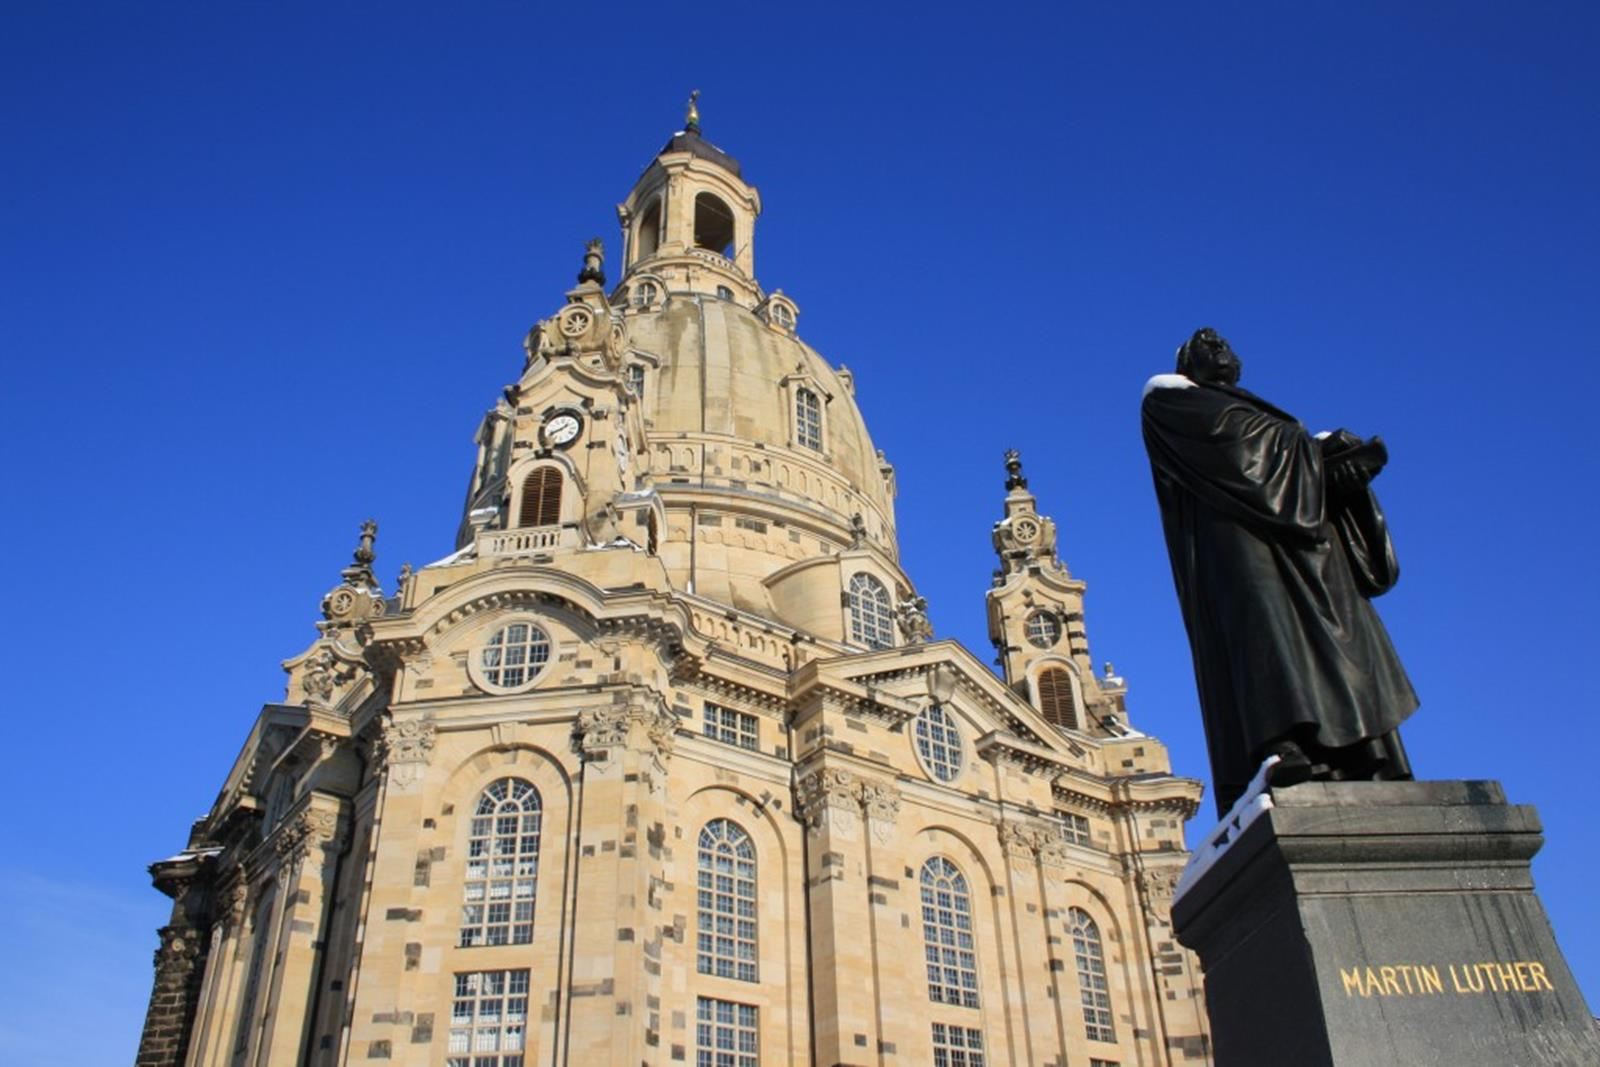 The Frauenkirche in Dresden is the best known symbol of protestantism in Germany © Christoph Münch